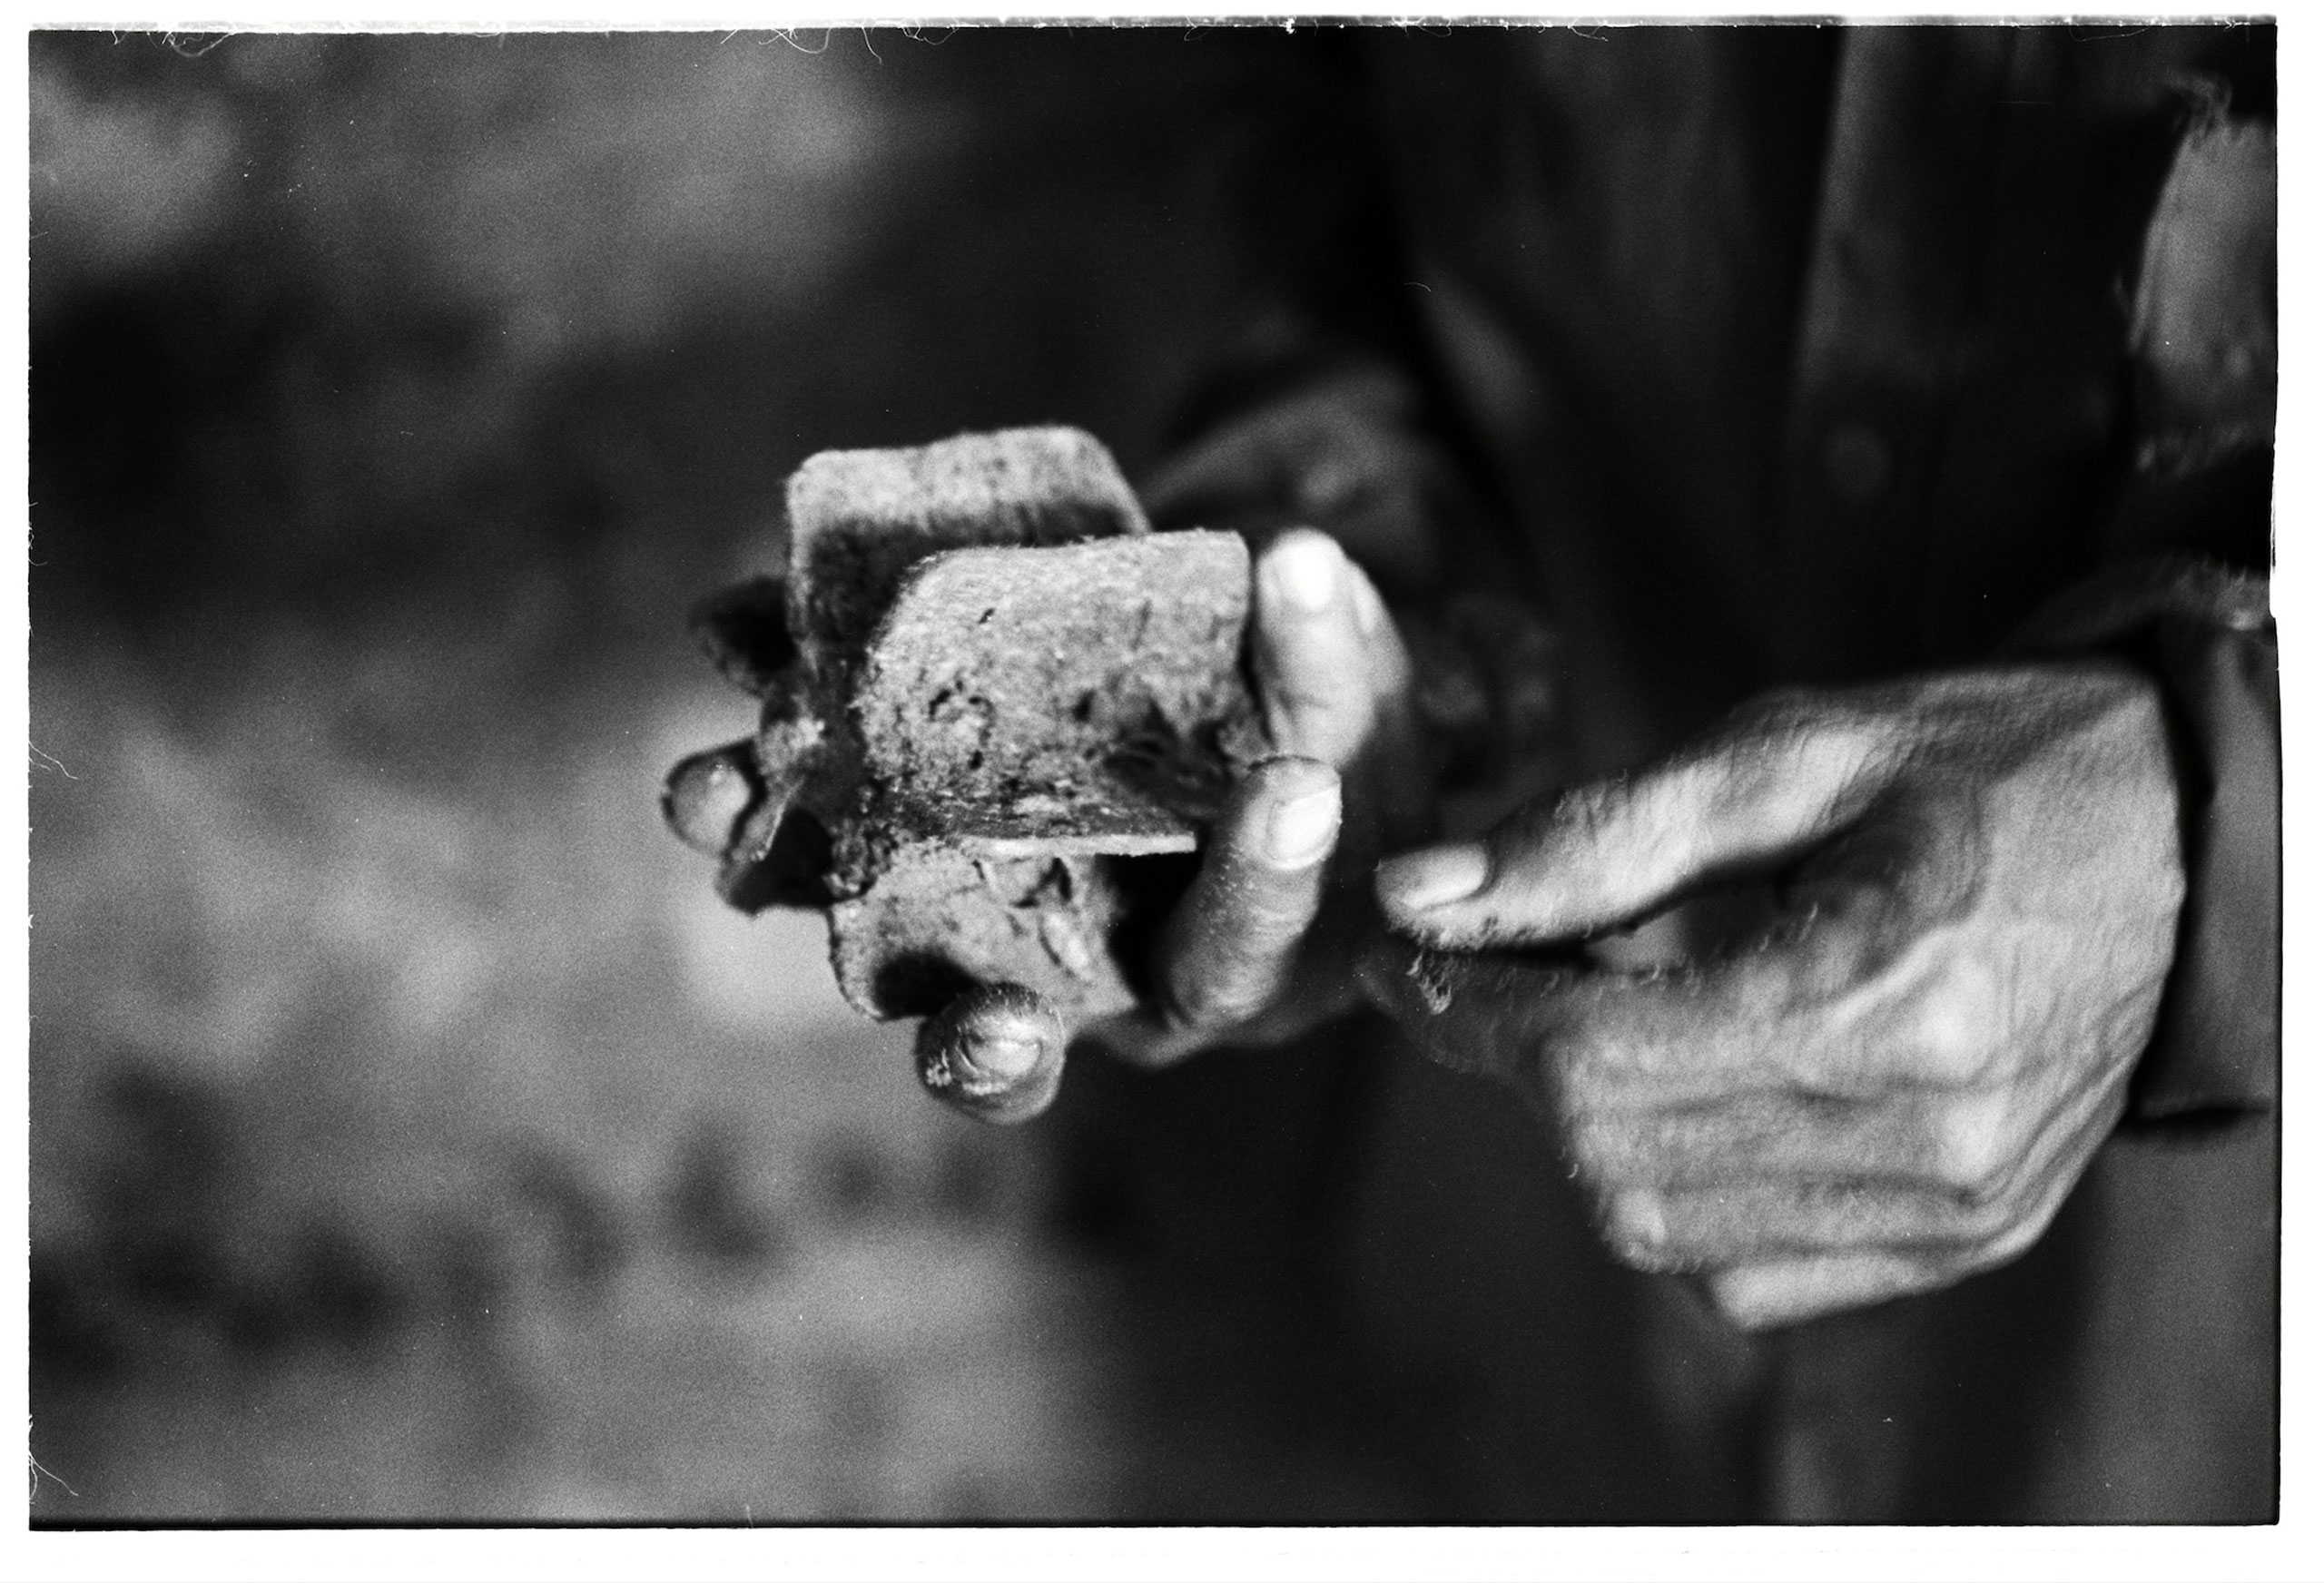 Vietnam 2014 A scrap metal collector assess a mortar shell she has just dug up. Each day she risks her life digging up UXO's which she sells to local scrap metal merchants for a few dollars.